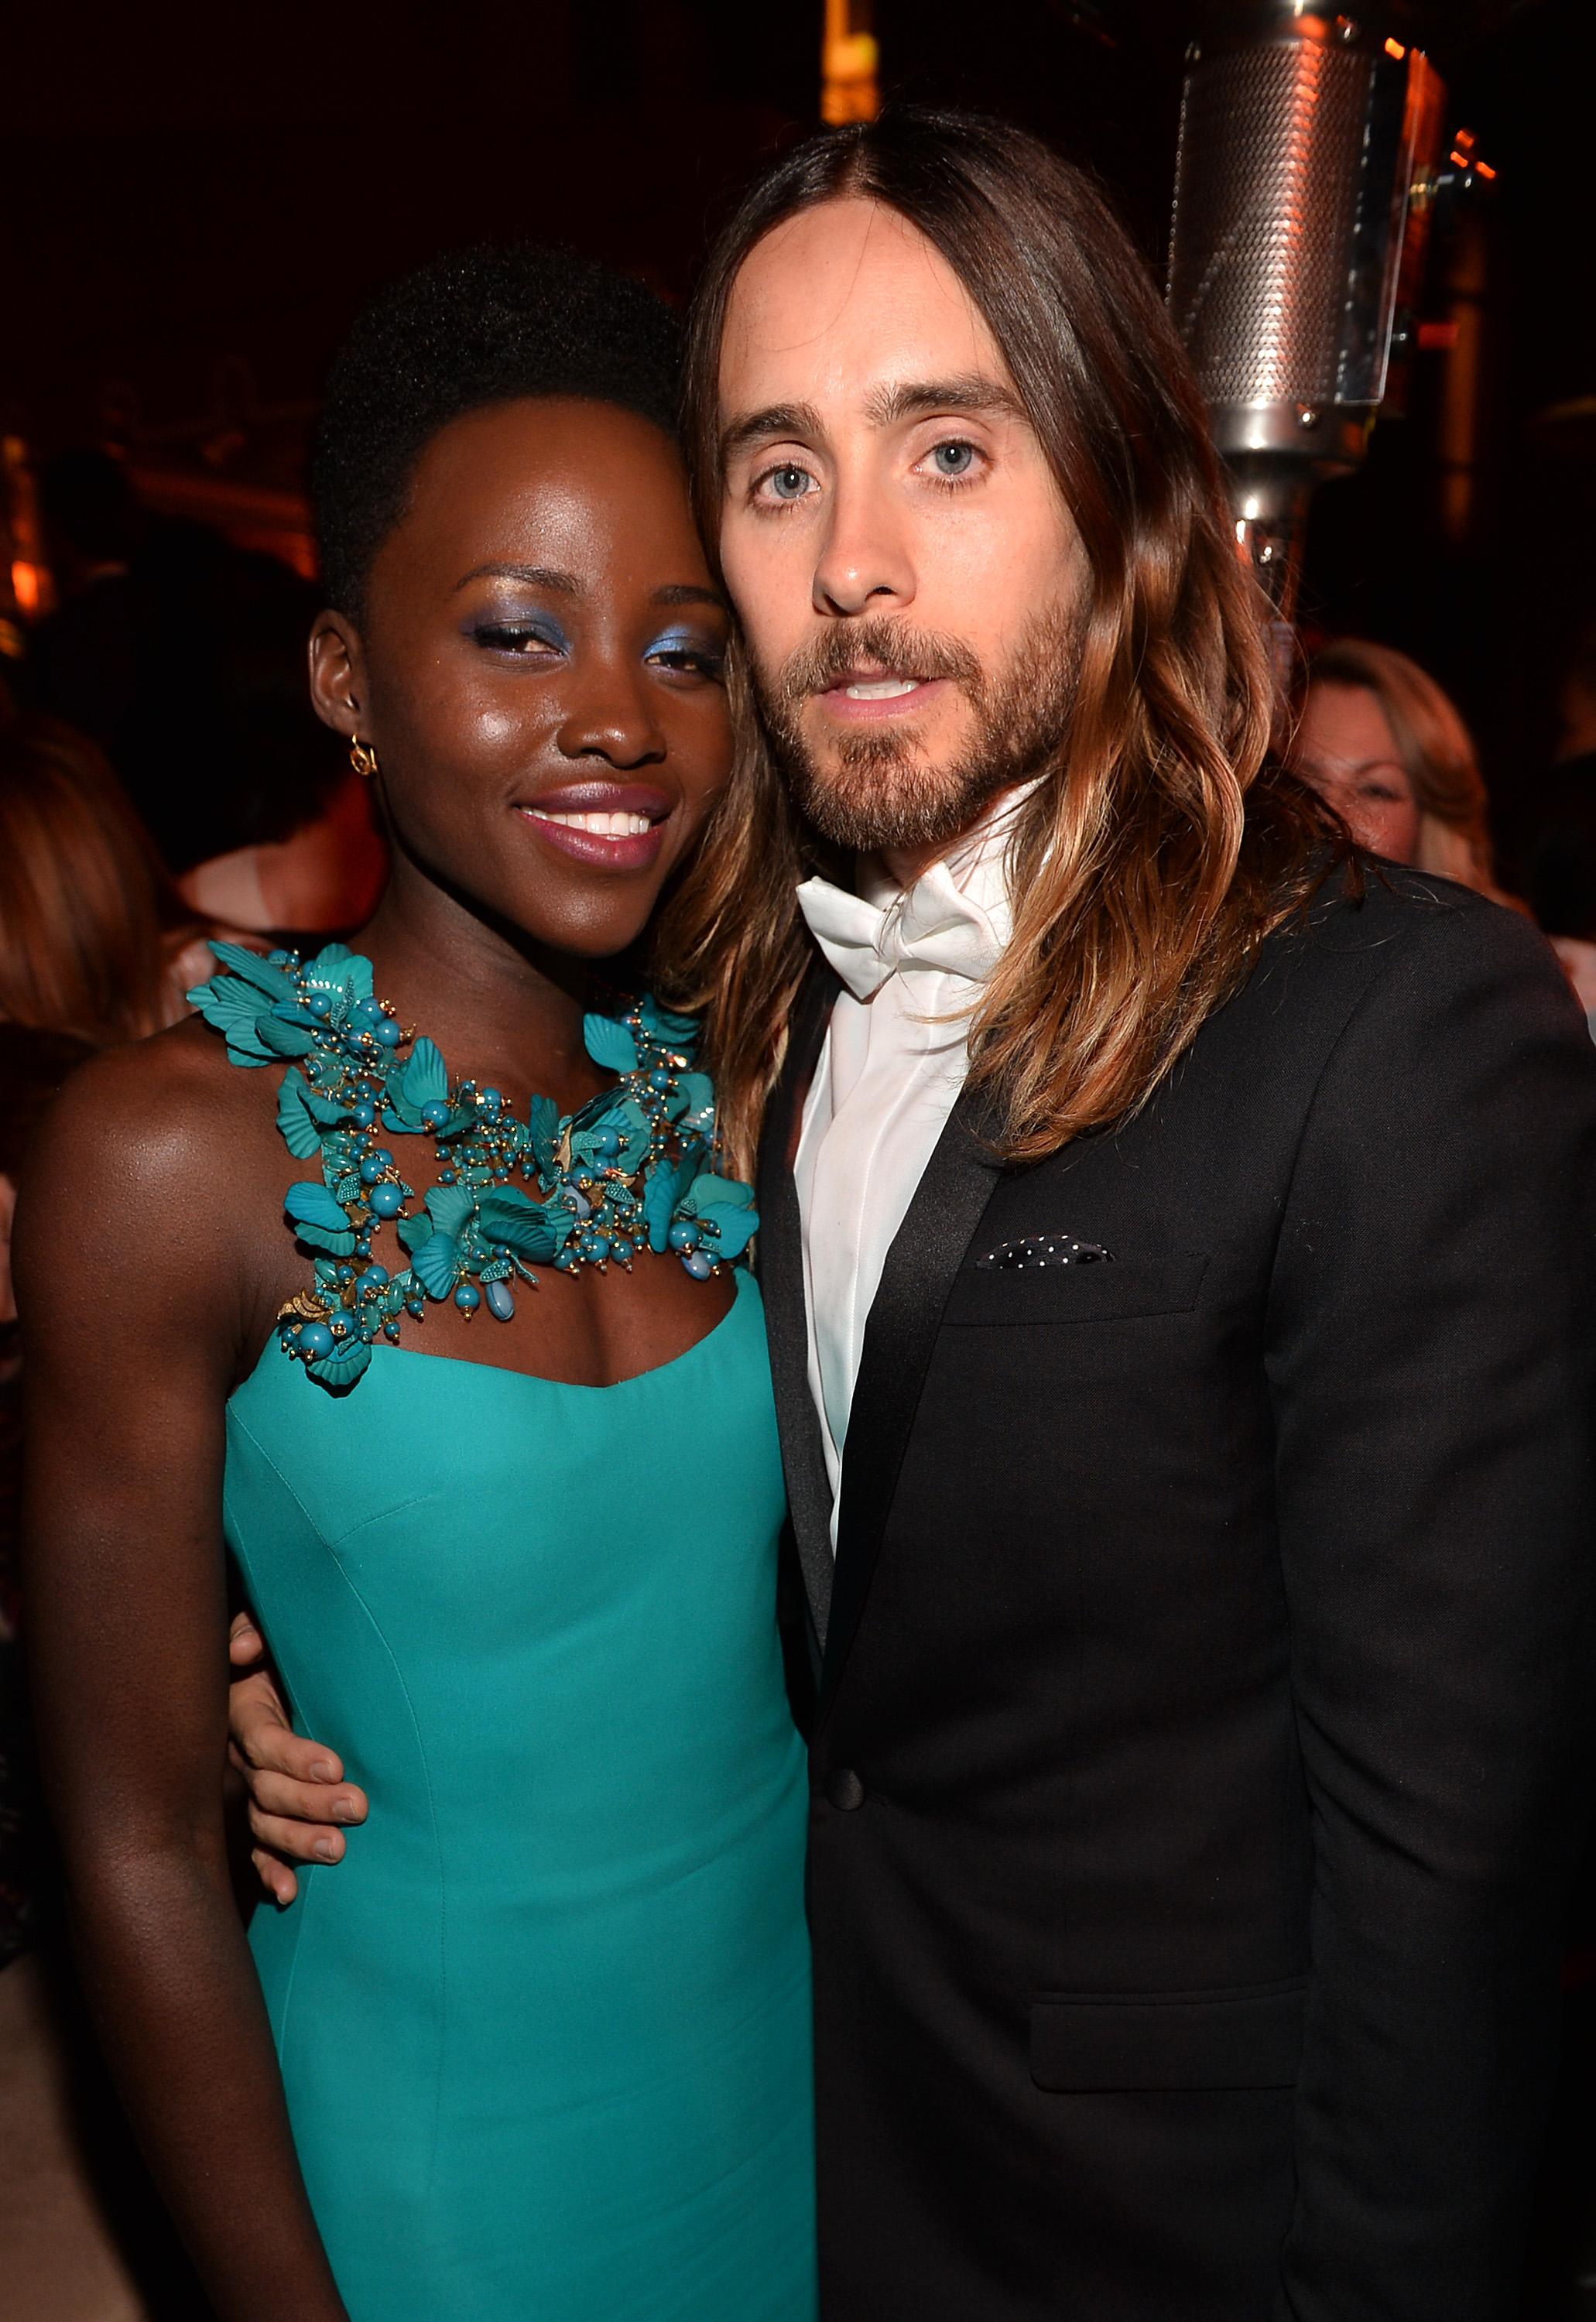 lupita nyongo dating jared leto Jared leto, lupita nyong'o  theory #1: jared and lupita are dating, flat-out they met sometime in the fall and their love blossomed during the awards season.